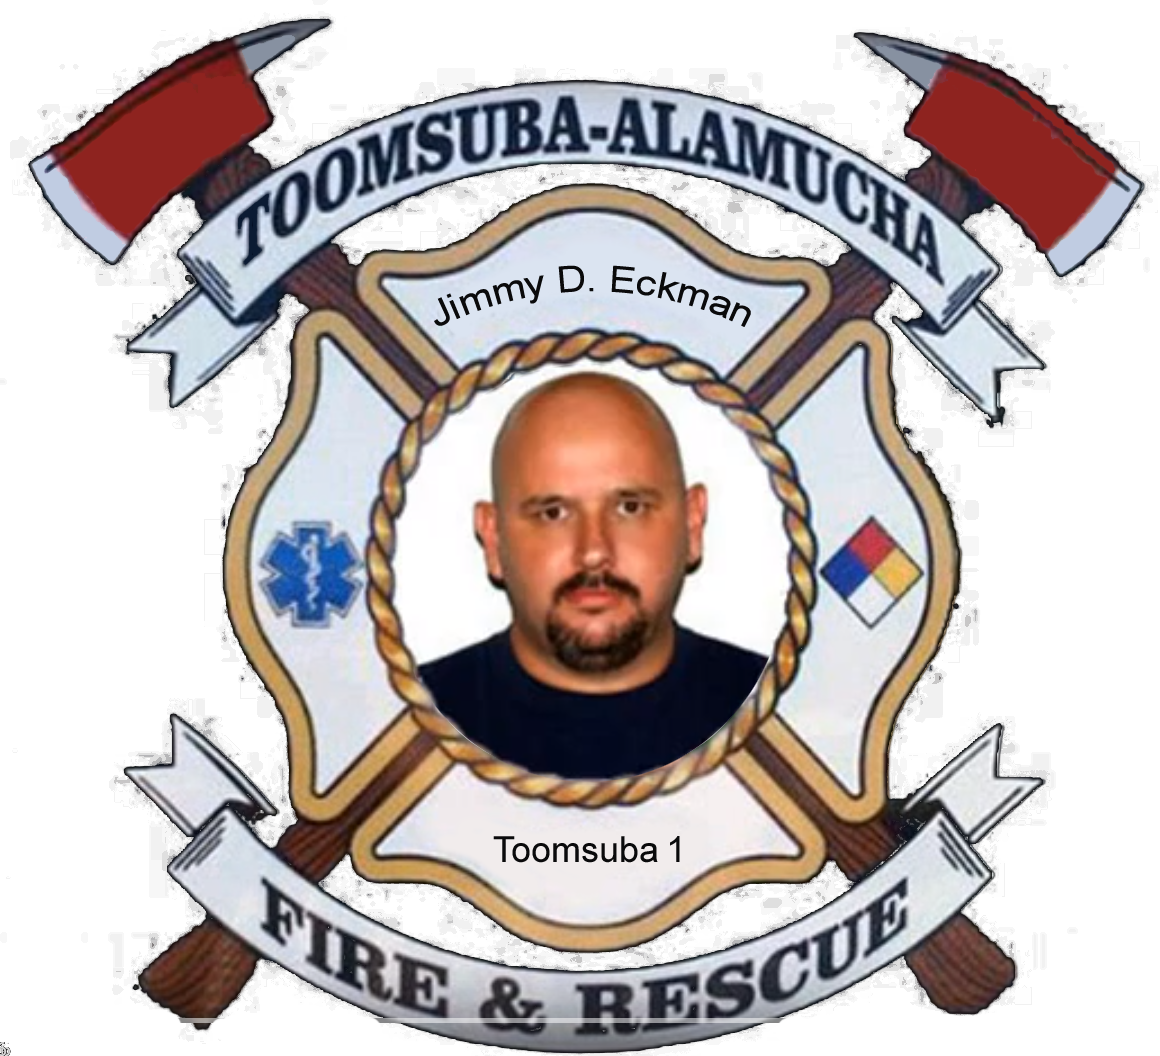 Jimmy Eckman; Toomsuba Firefighter #12